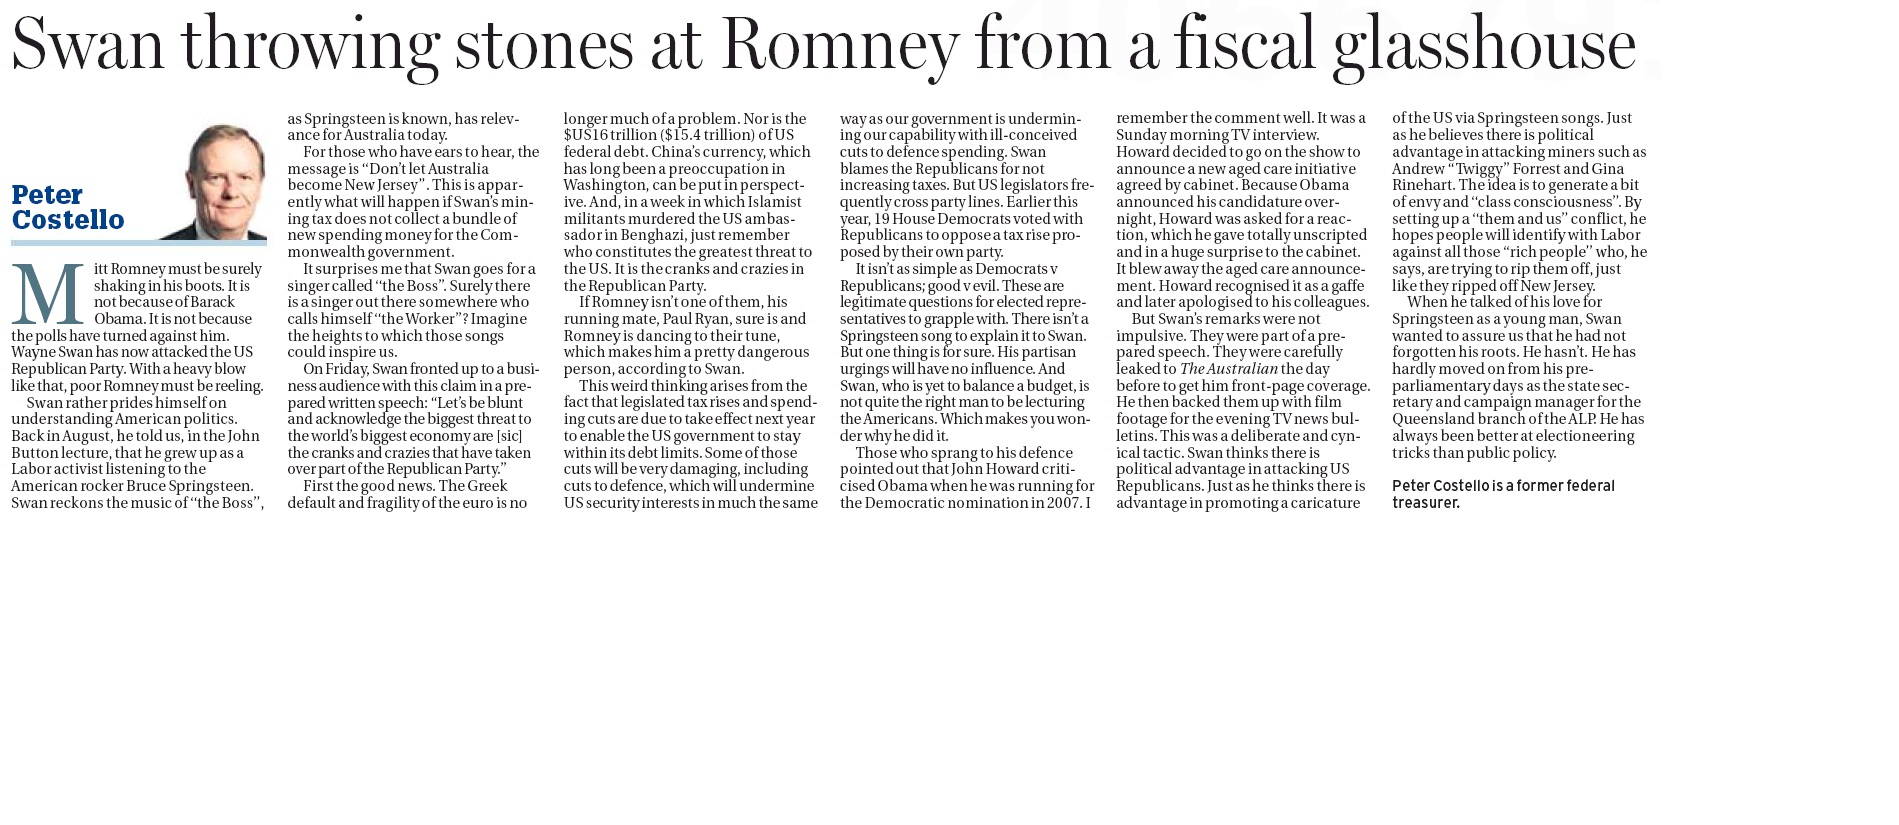 smh_-_swan_throwing_stones_at_romney_from_a_fiscal_glasshouse_-_26_september_2012jpg